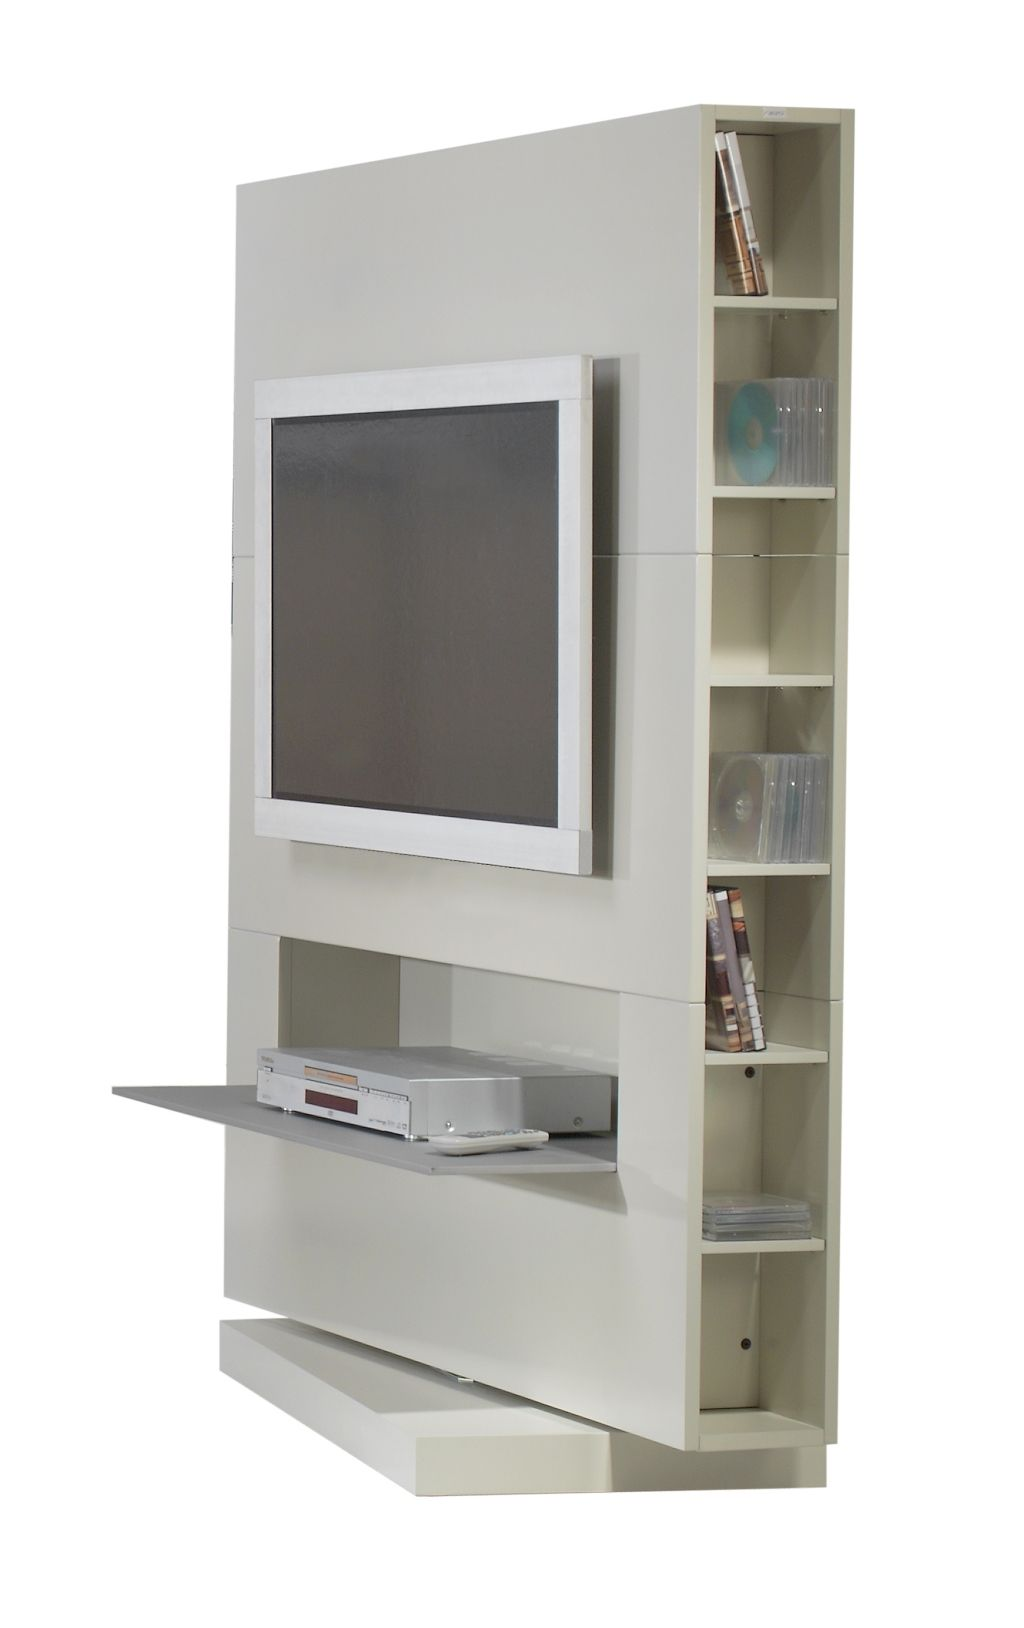 Meuble tv design contemporain et moderne tempo 7 - Meuble de separation ...